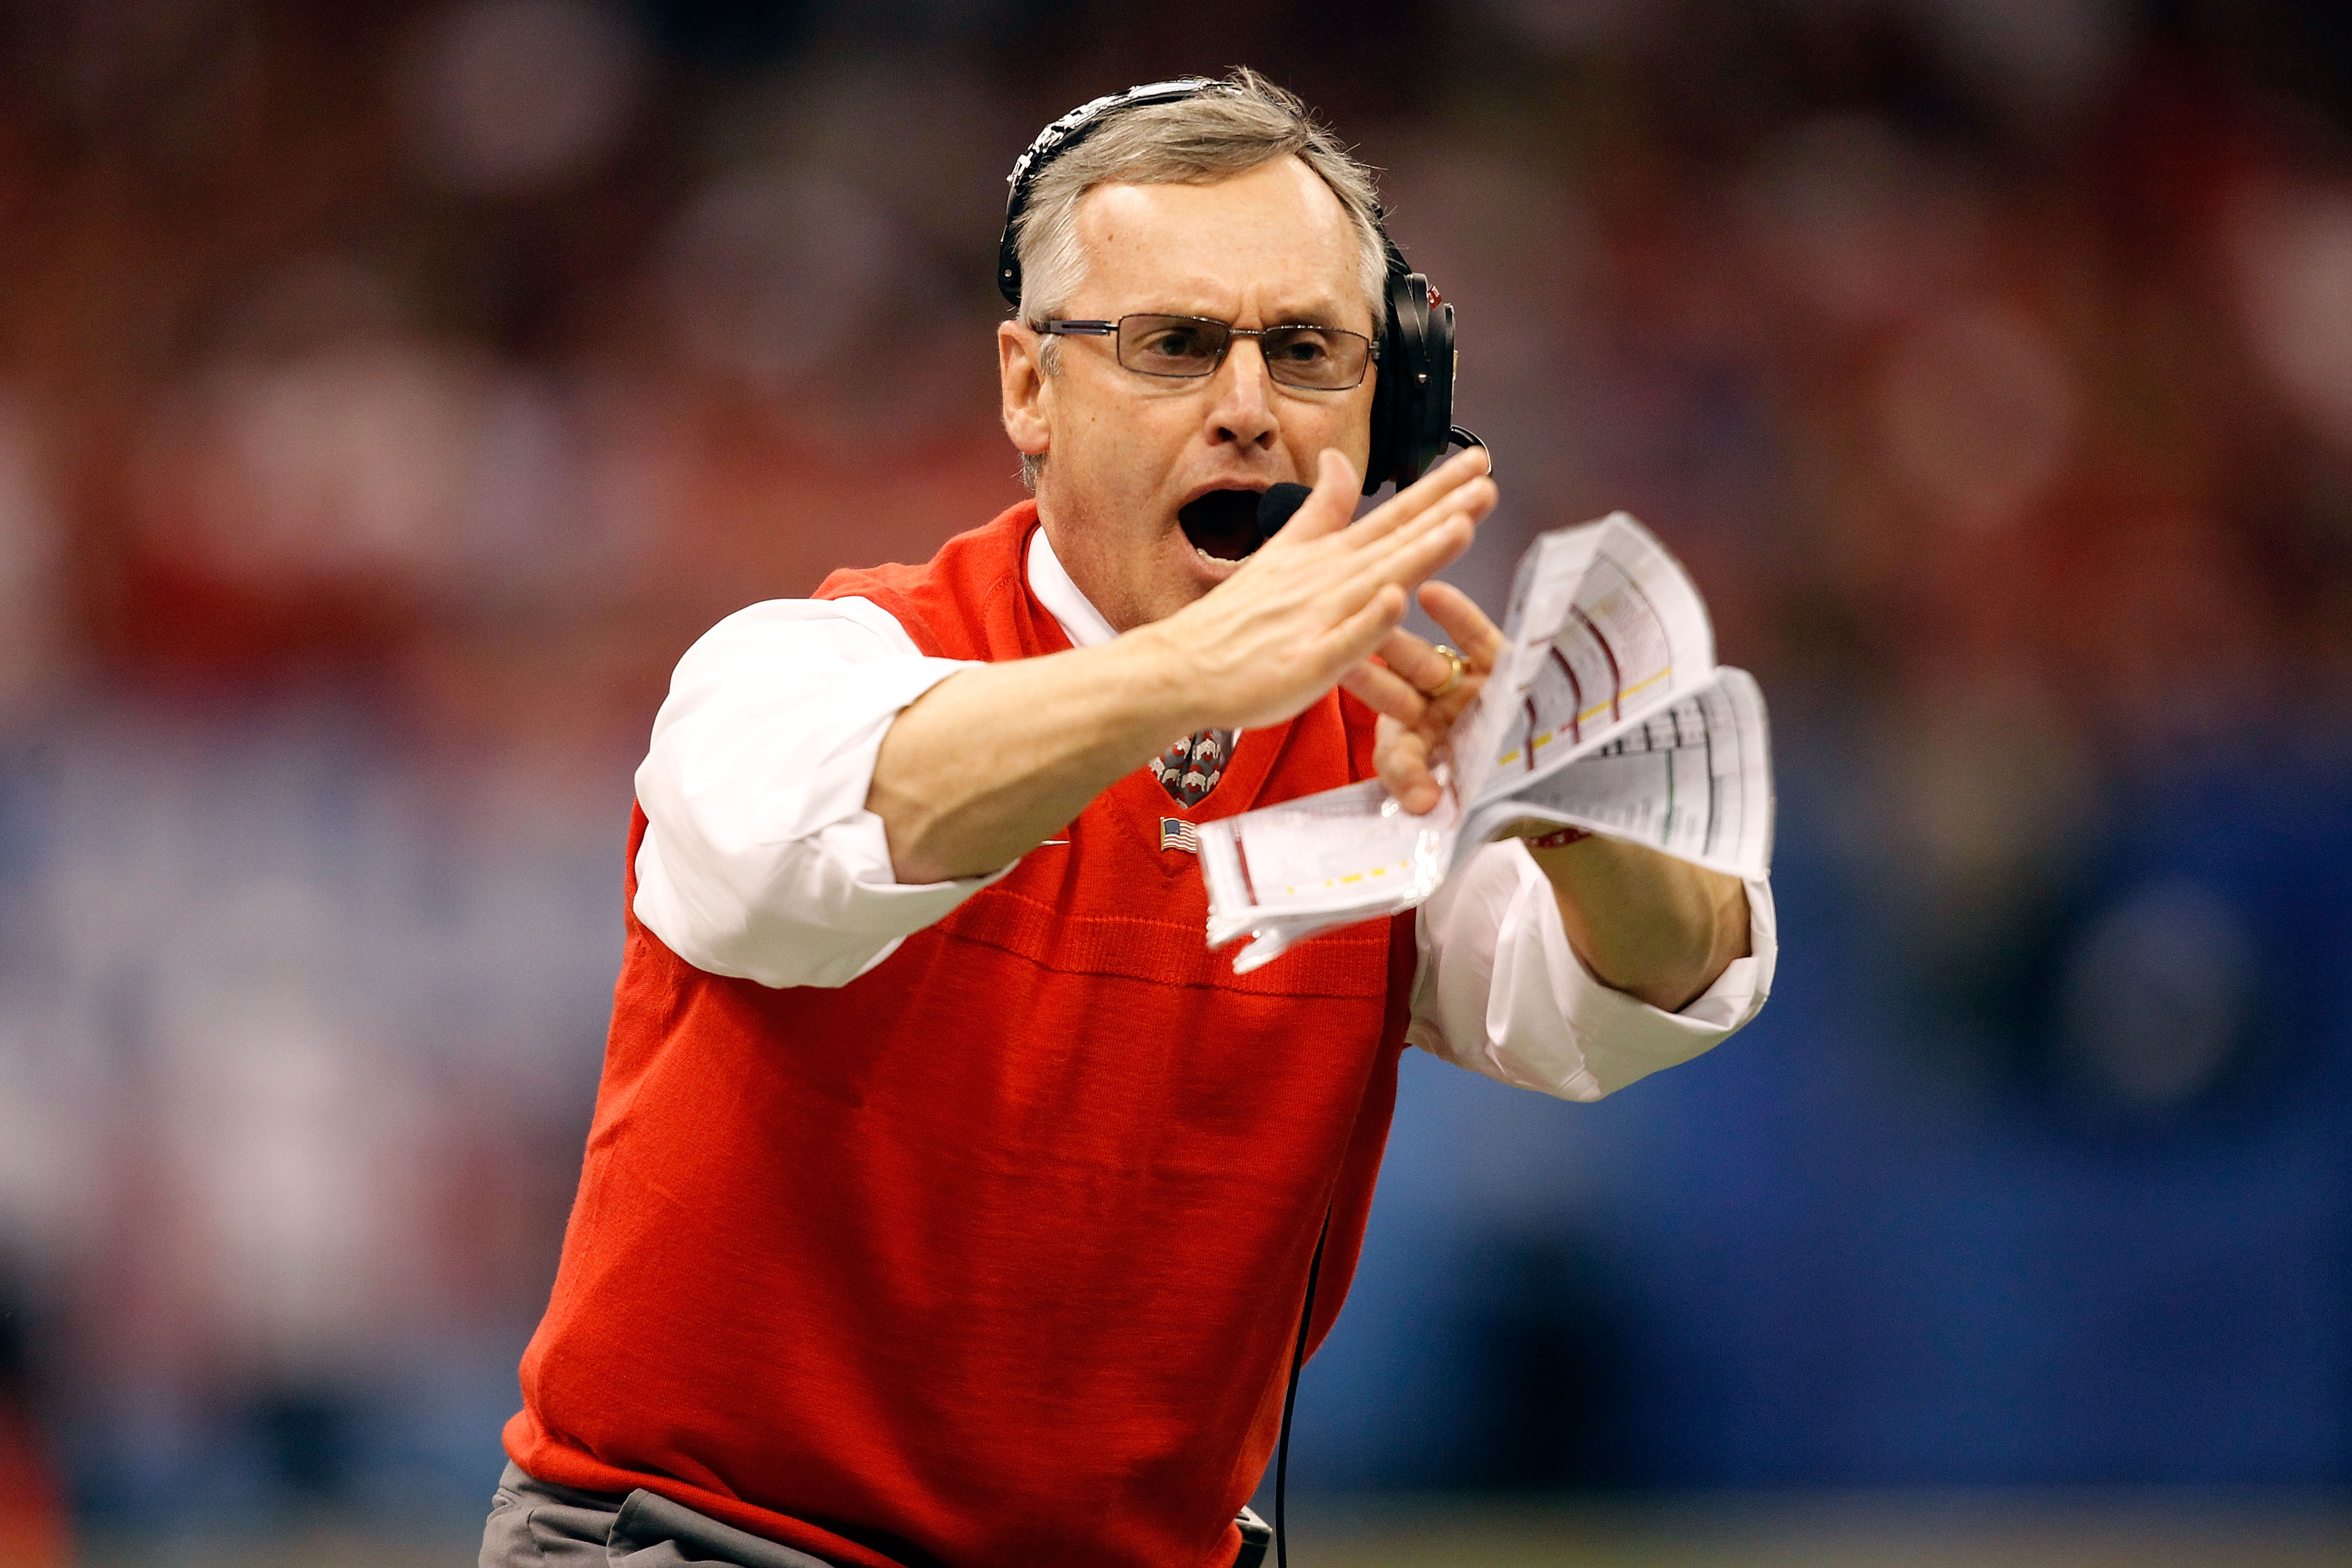 NEW ORLEANS, LA - JANUARY 04:  Head coach Jim Tressel of the Ohio State Buckeyes calls a time out in the first half against the Arkansas Razorbacks during the Allstate Sugar Bowl at the Louisiana Superdome on January 4, 2011 in New Orleans, Louisiana.  (P